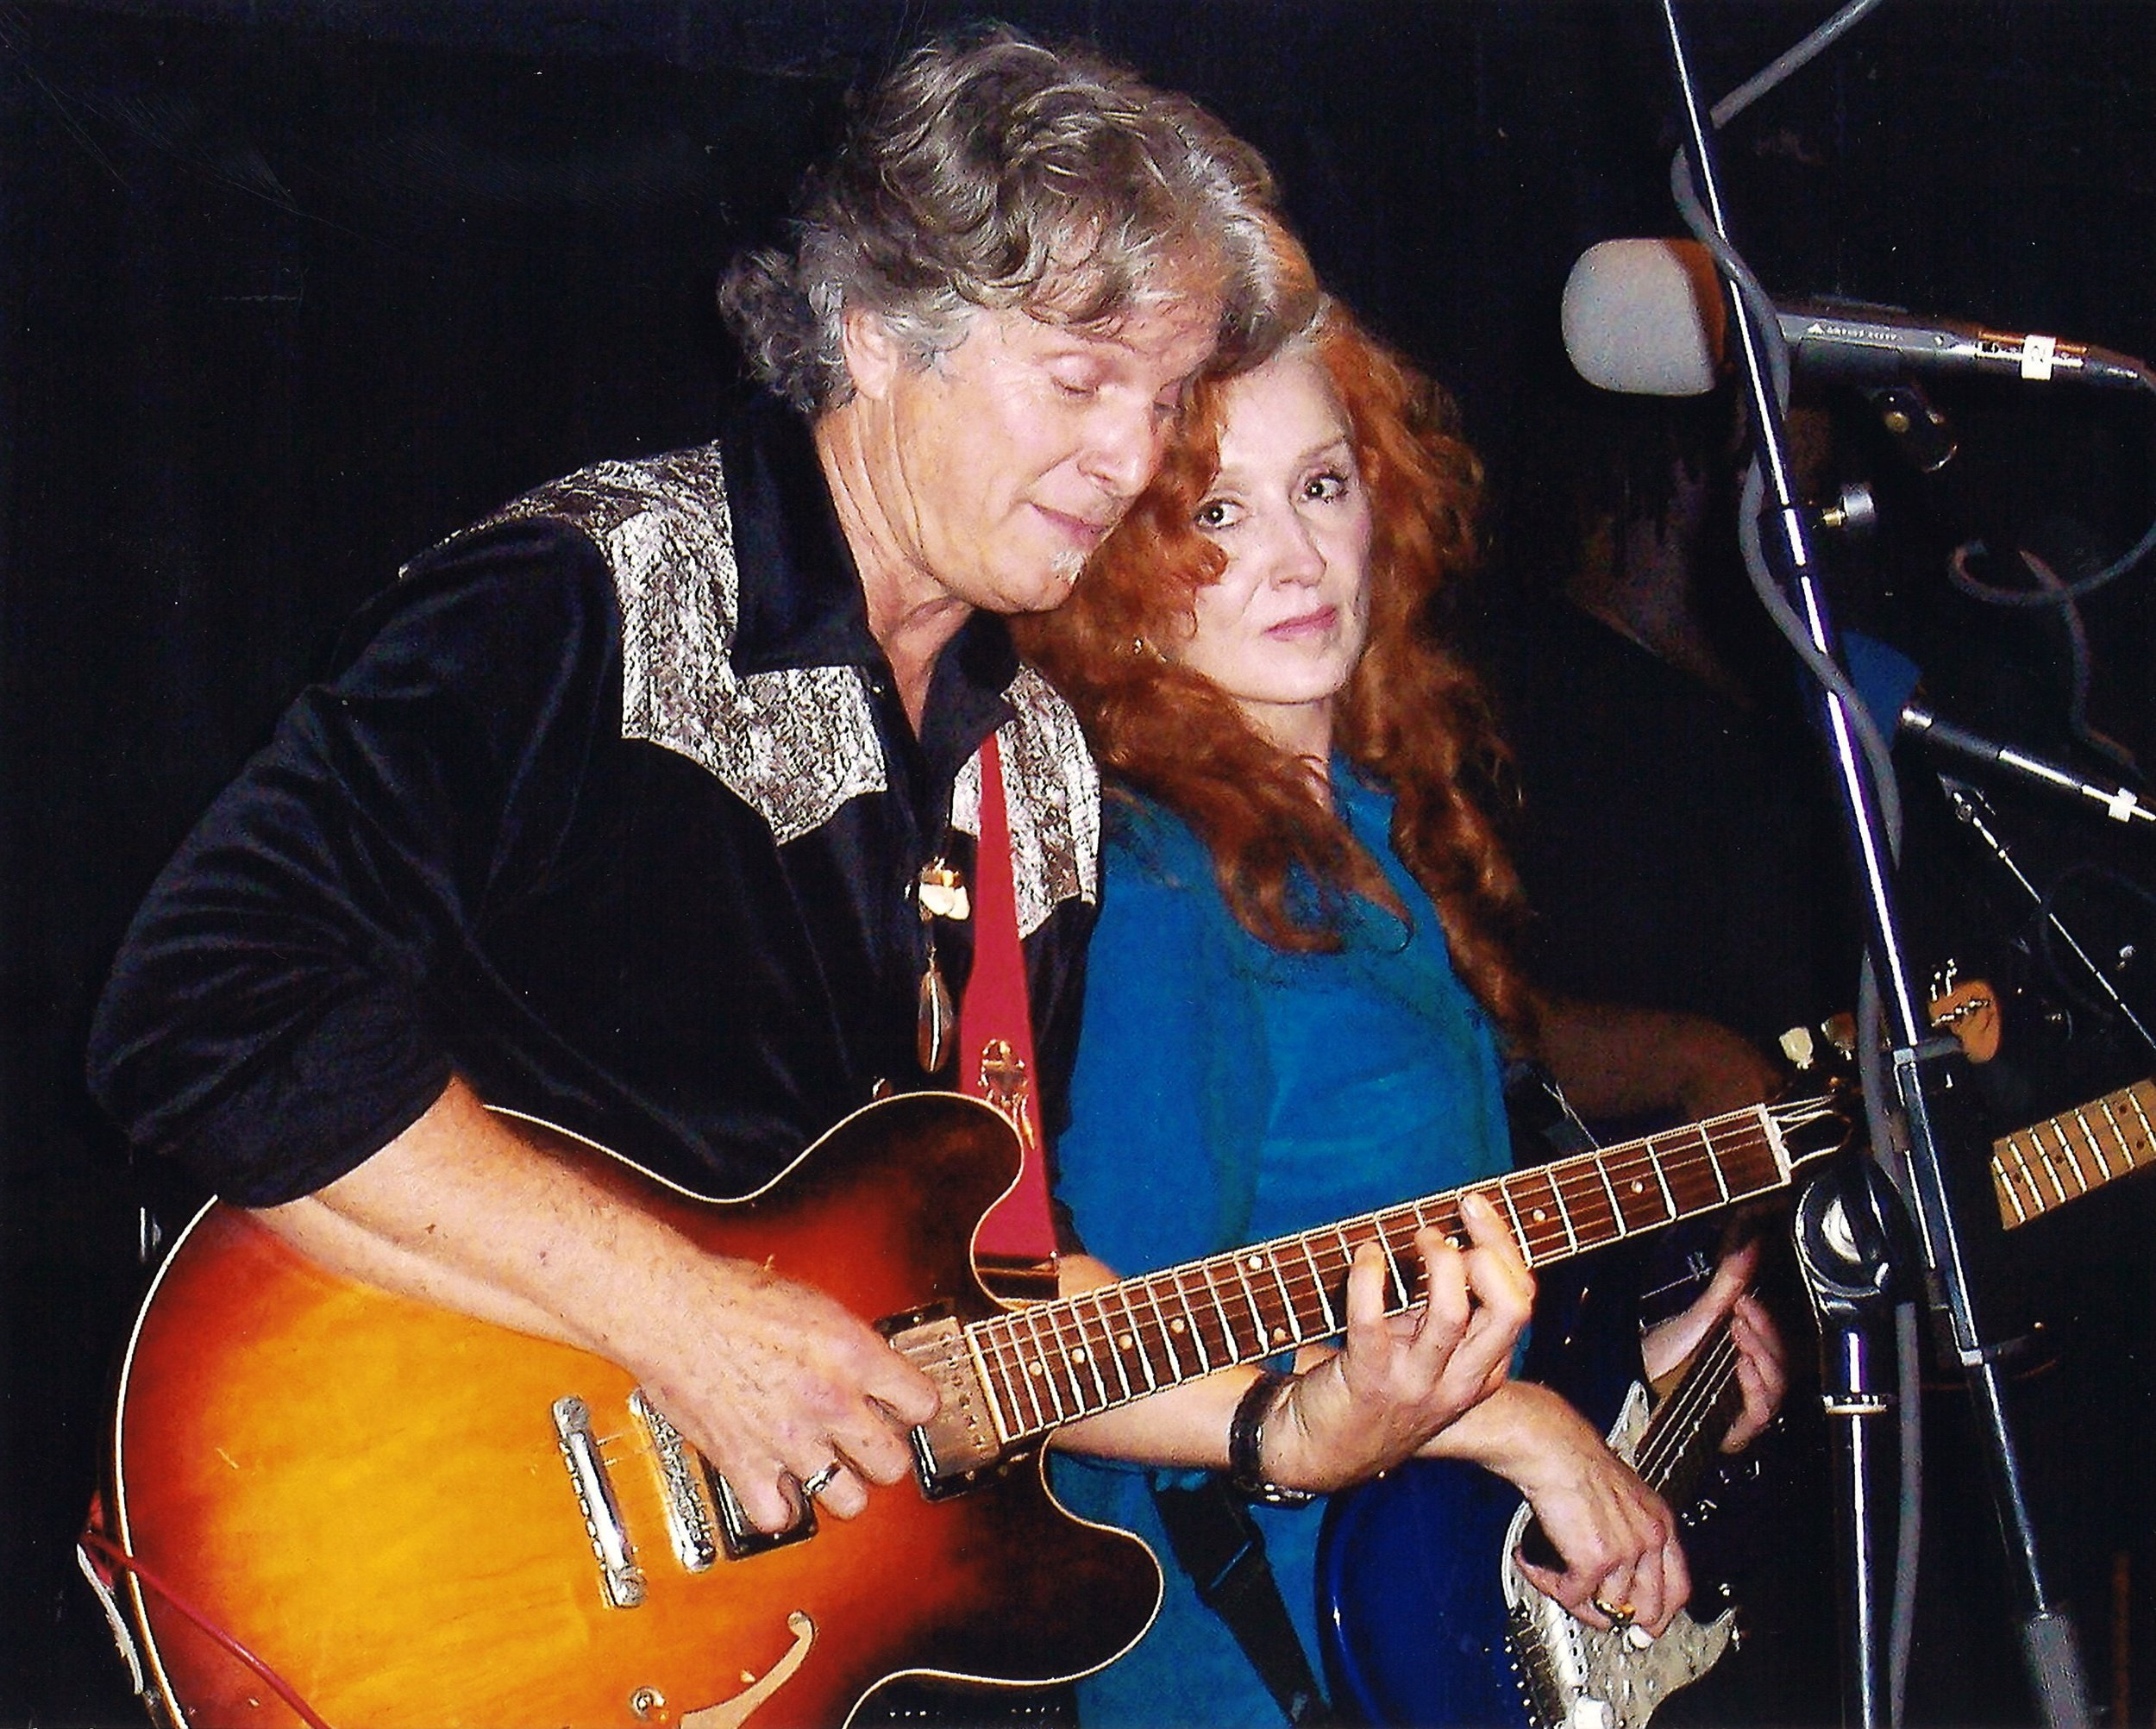 Stephen Bruton and Bonnie Raitt Gettin' Down.